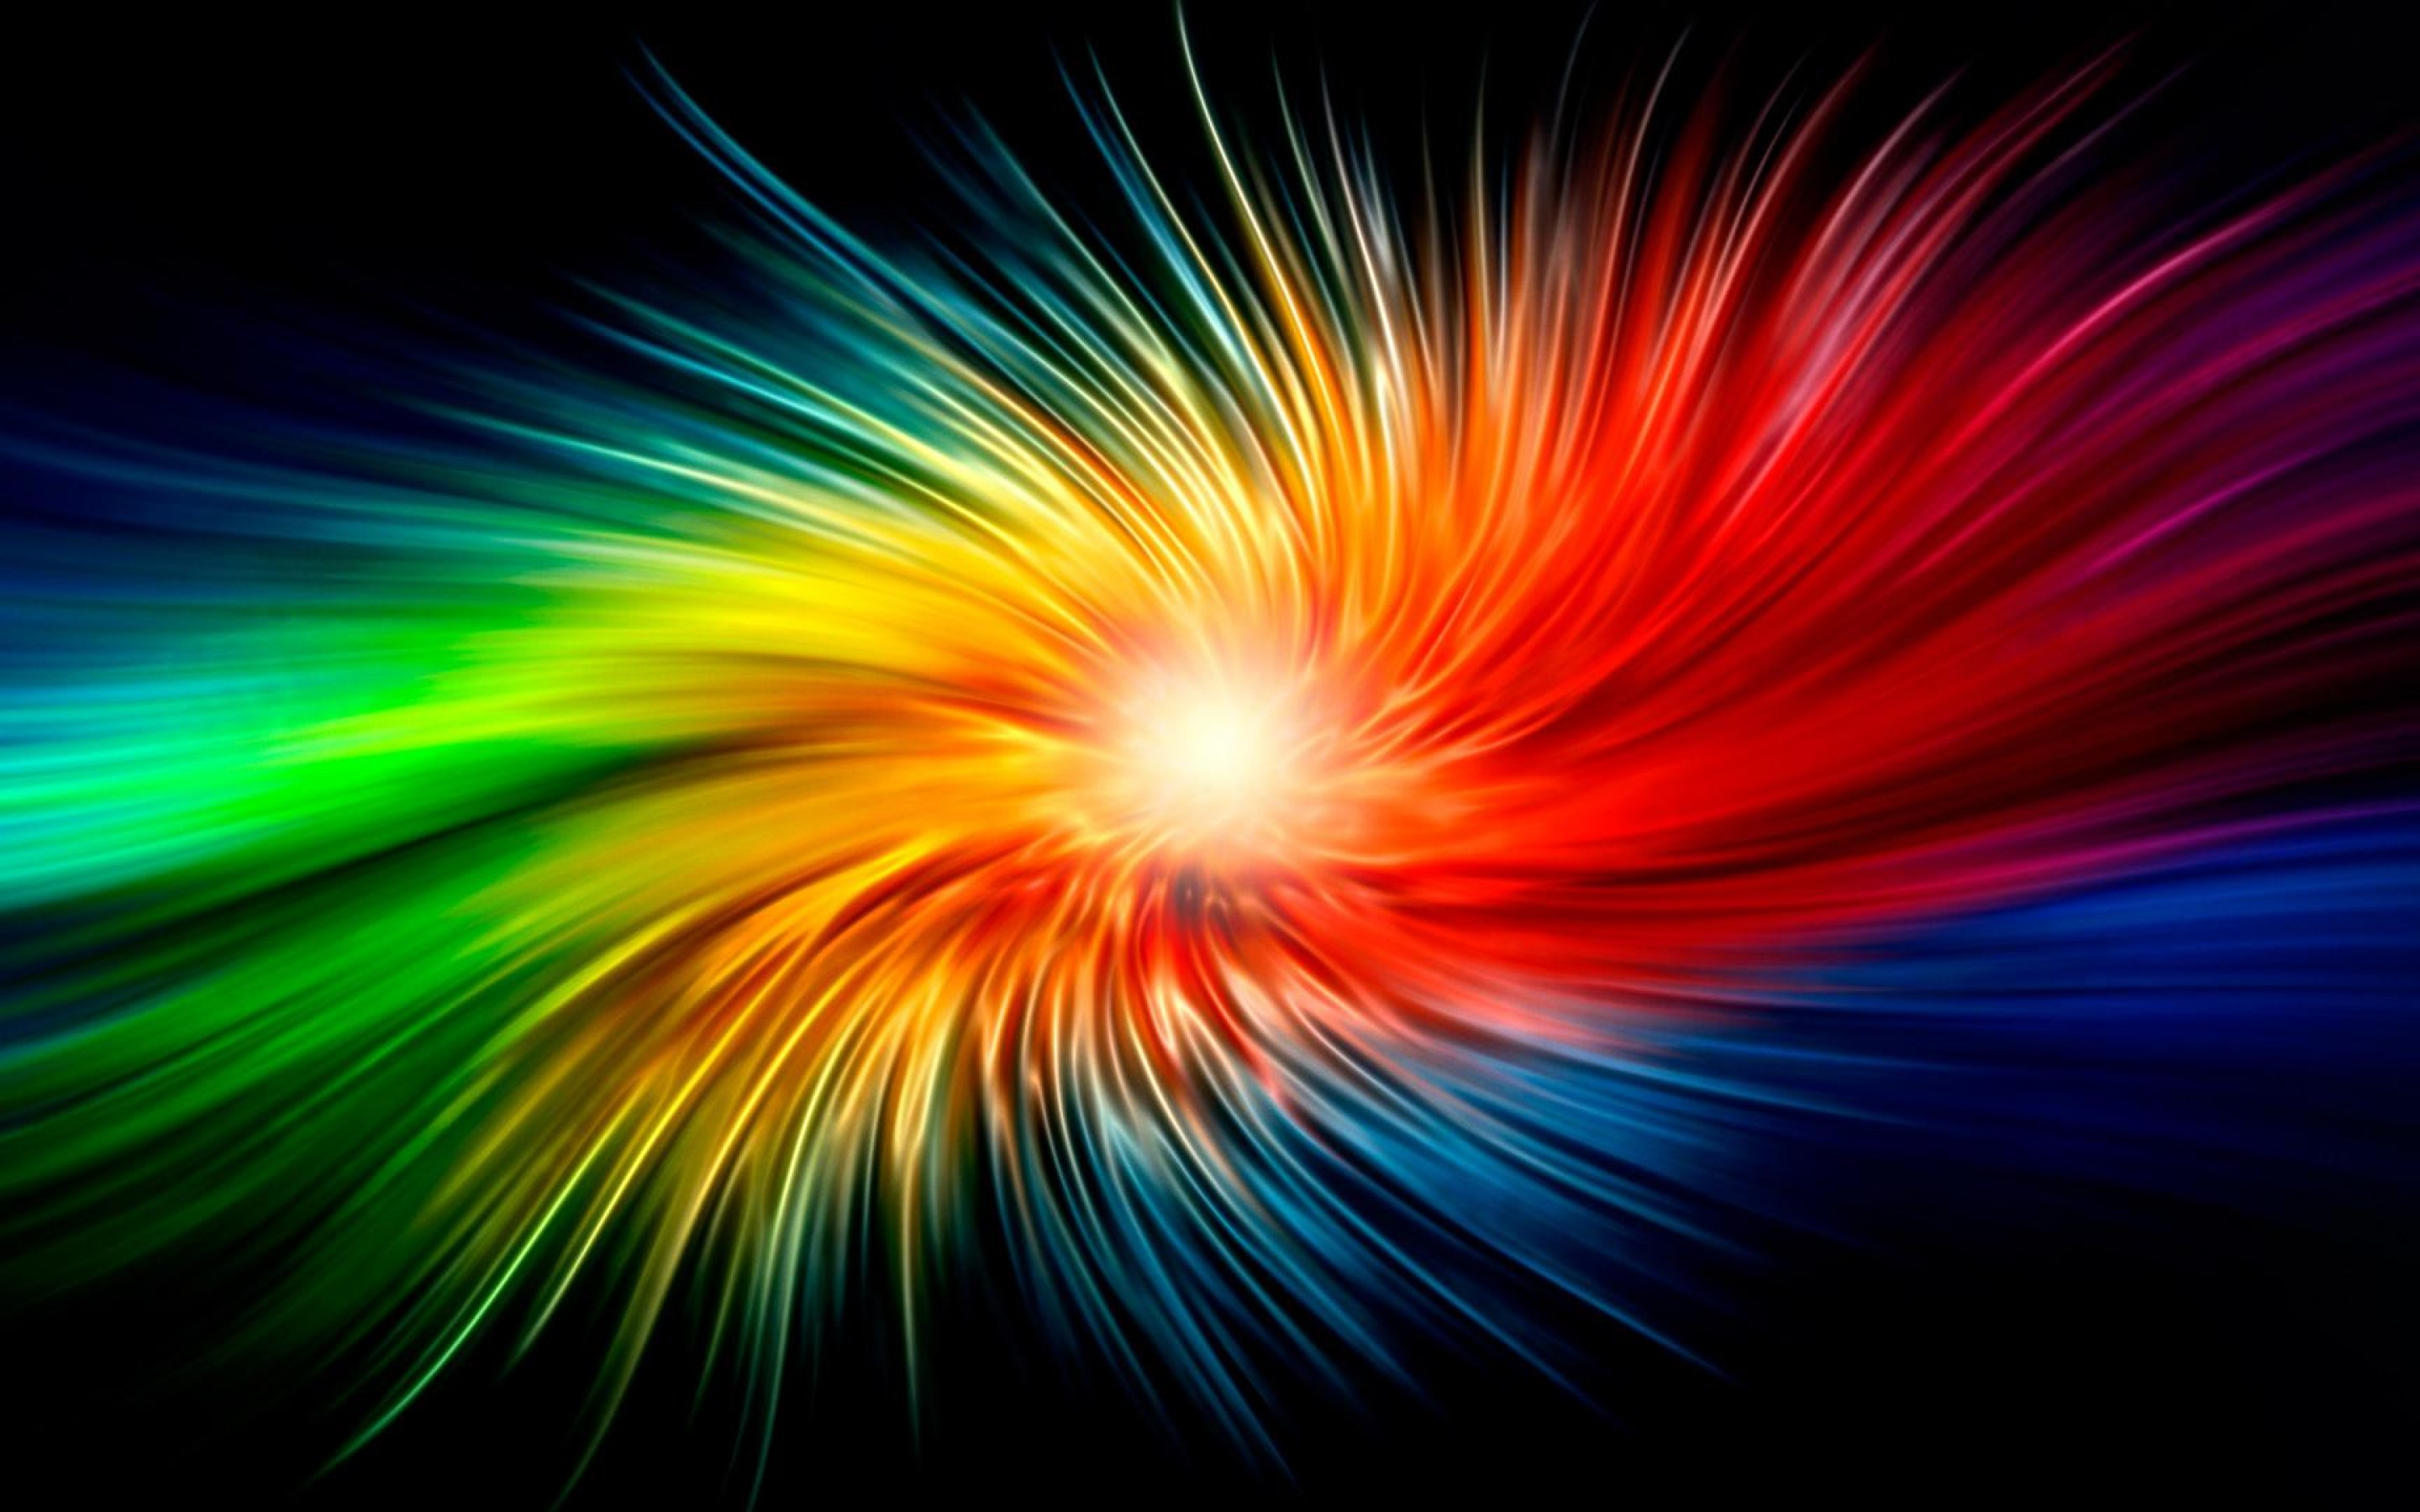 Colourful wallpapers pictures images - Colorful background hd ...